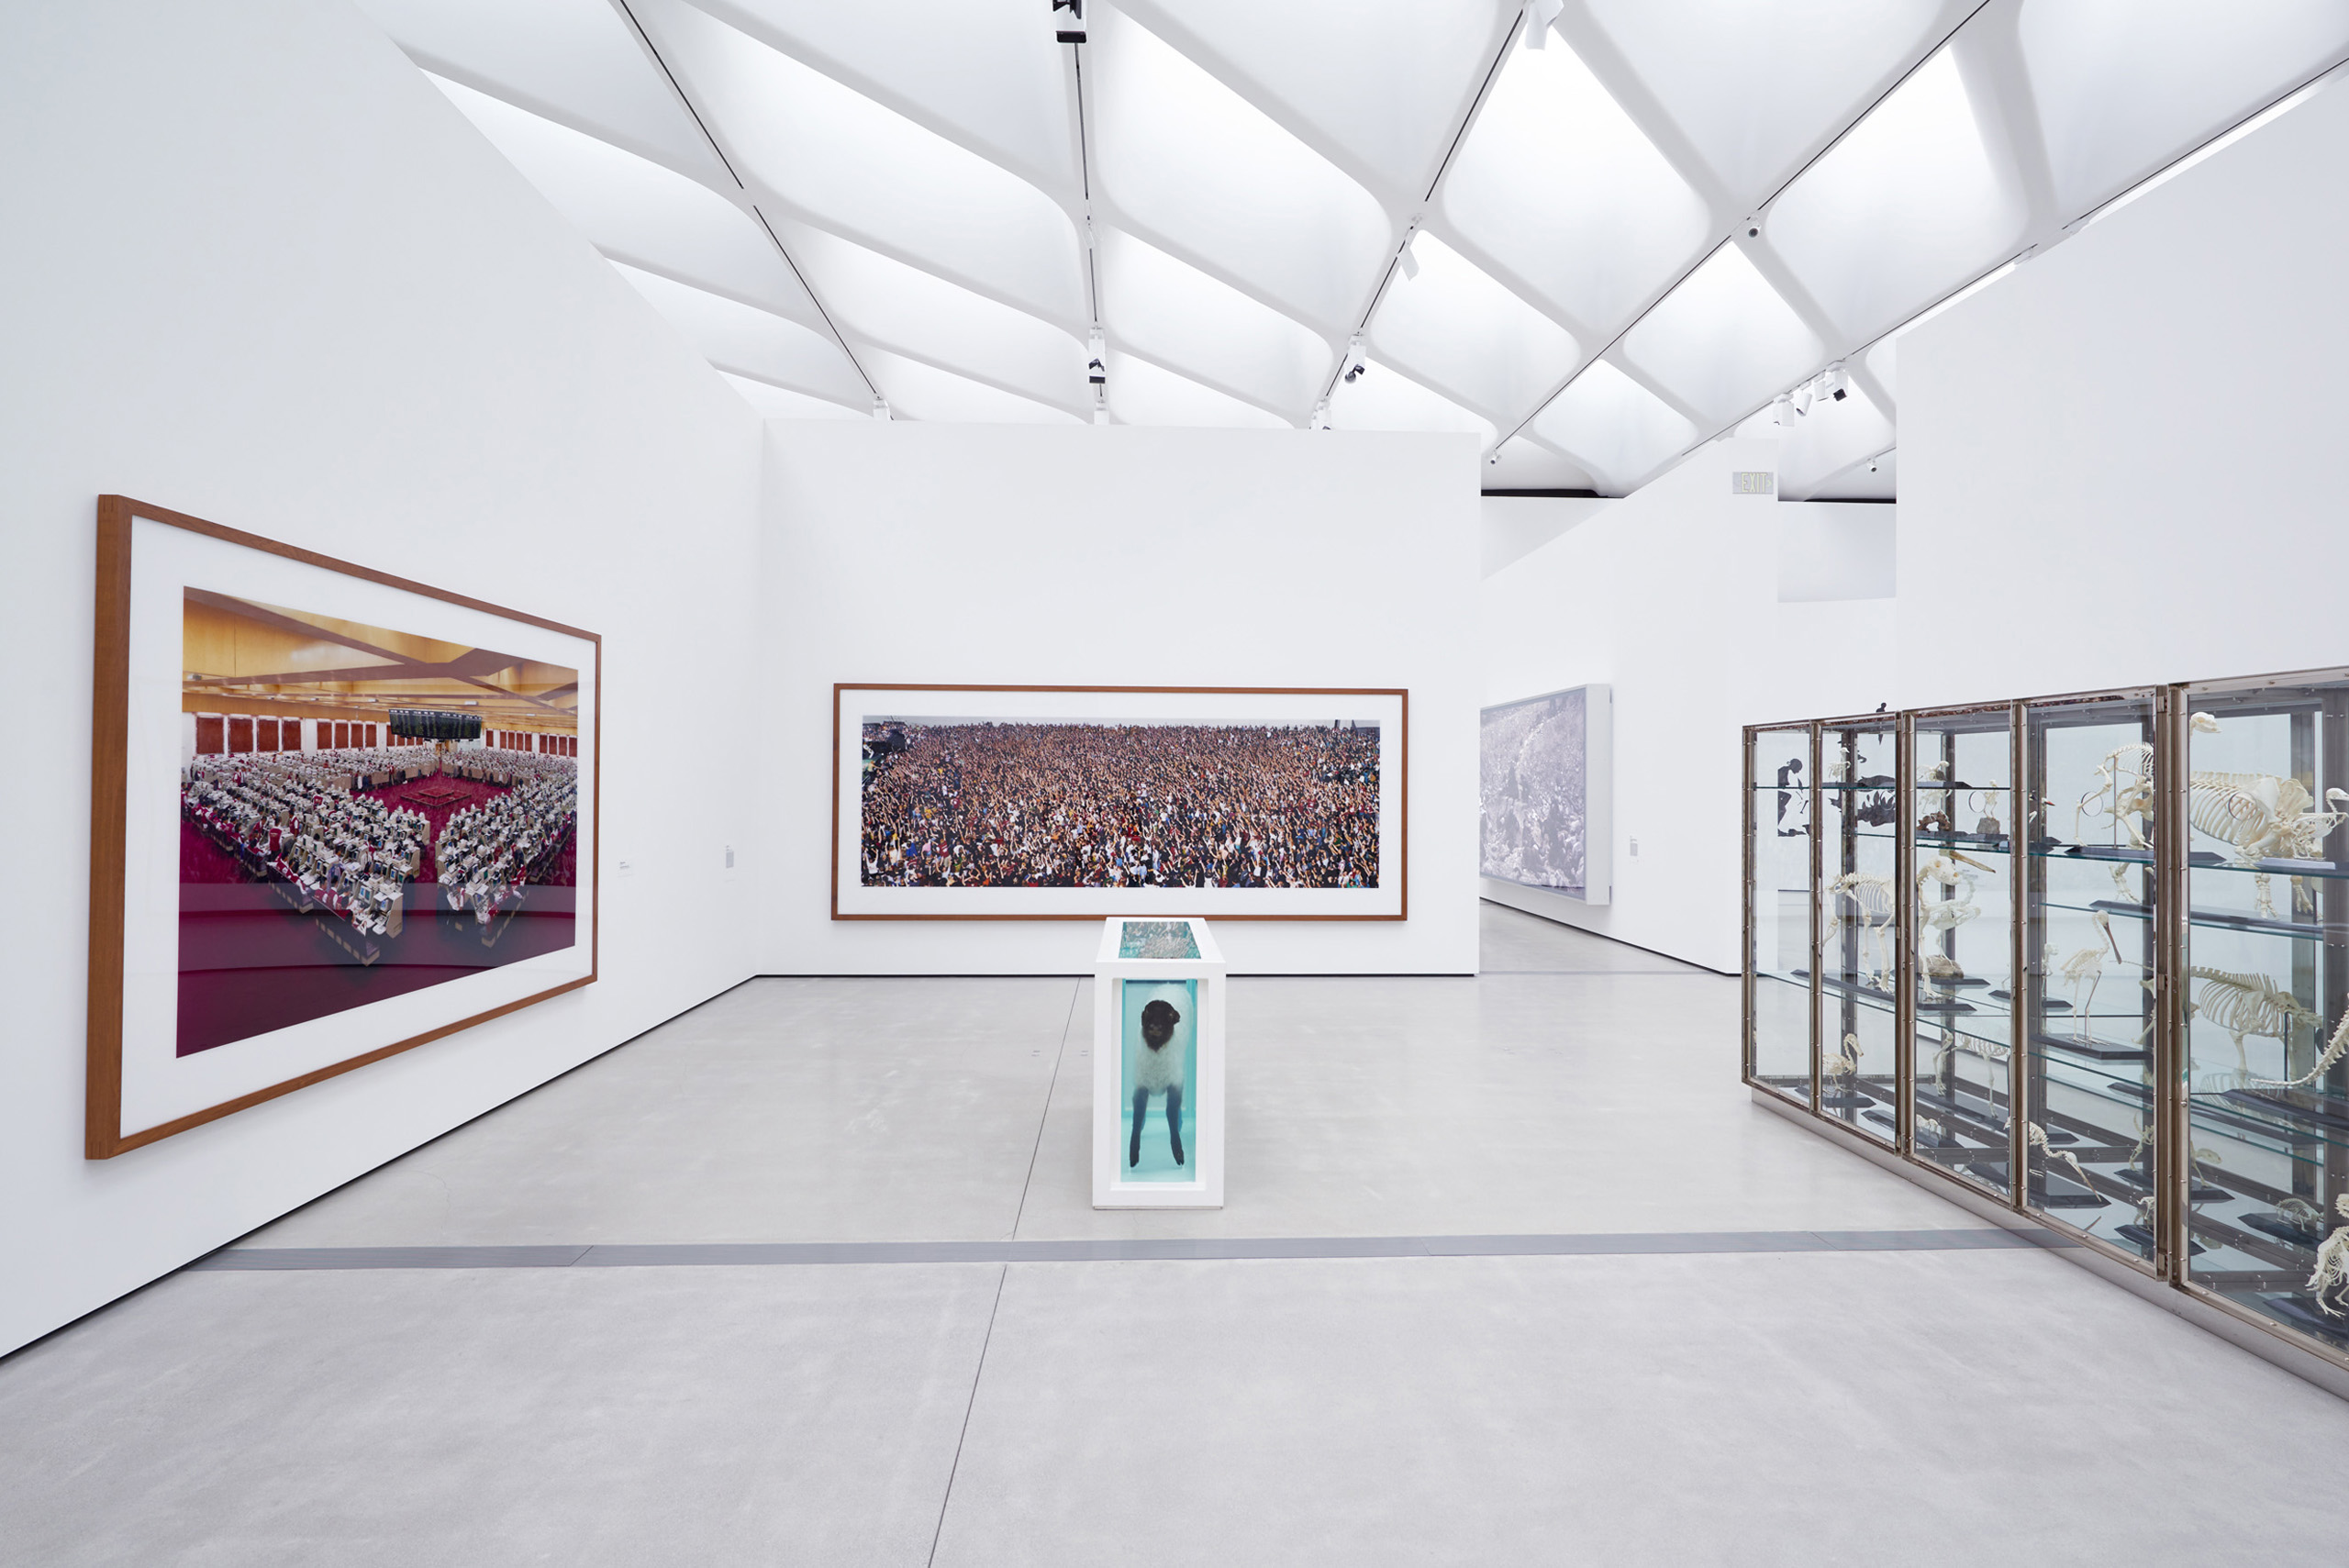 A view of the interior of The Broad Museum in Los Angeles on Sept. 18th, 2015.